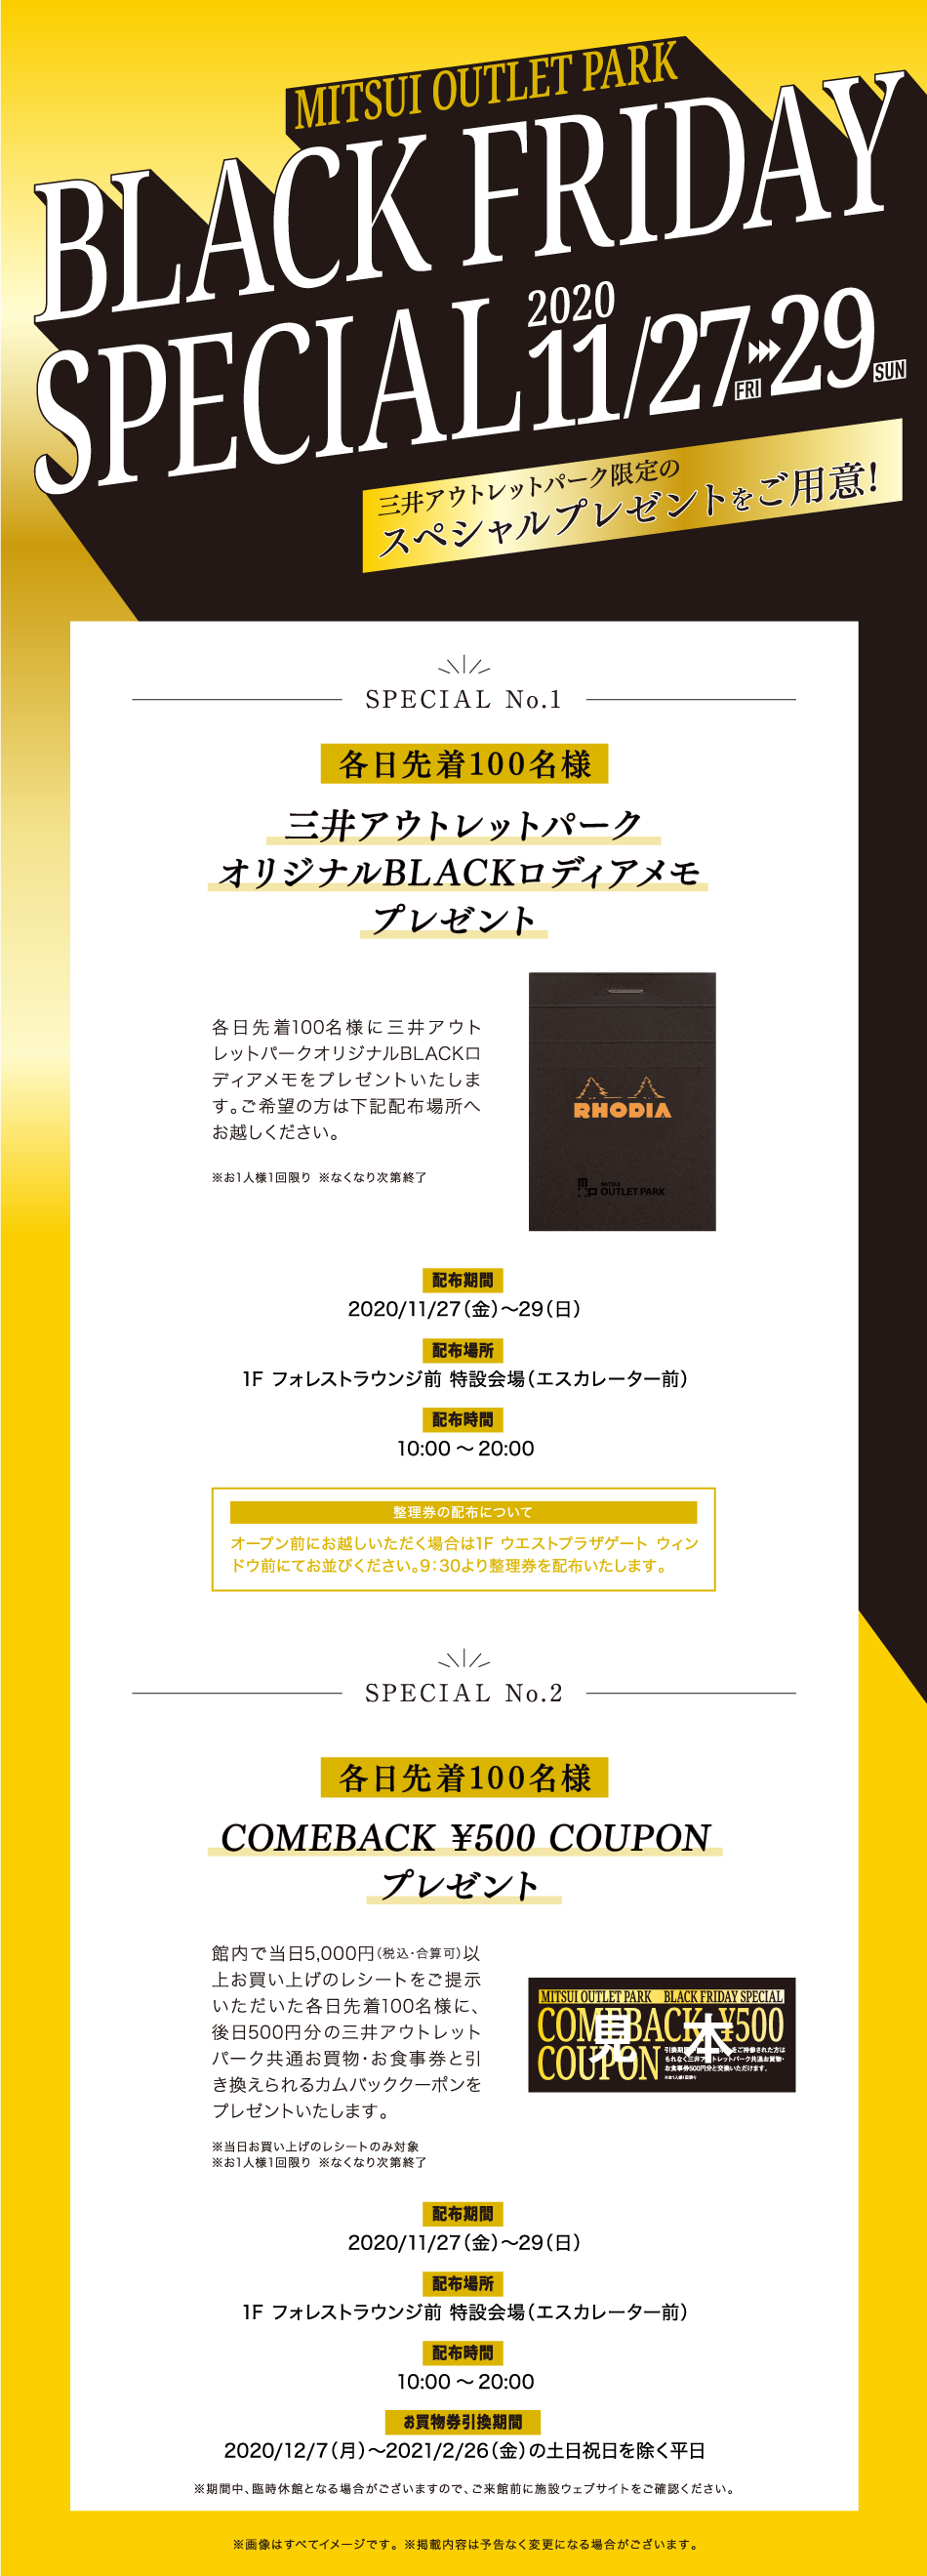 BLACK FRIDAY SPECIAL 11/27(金)~11/29(日)